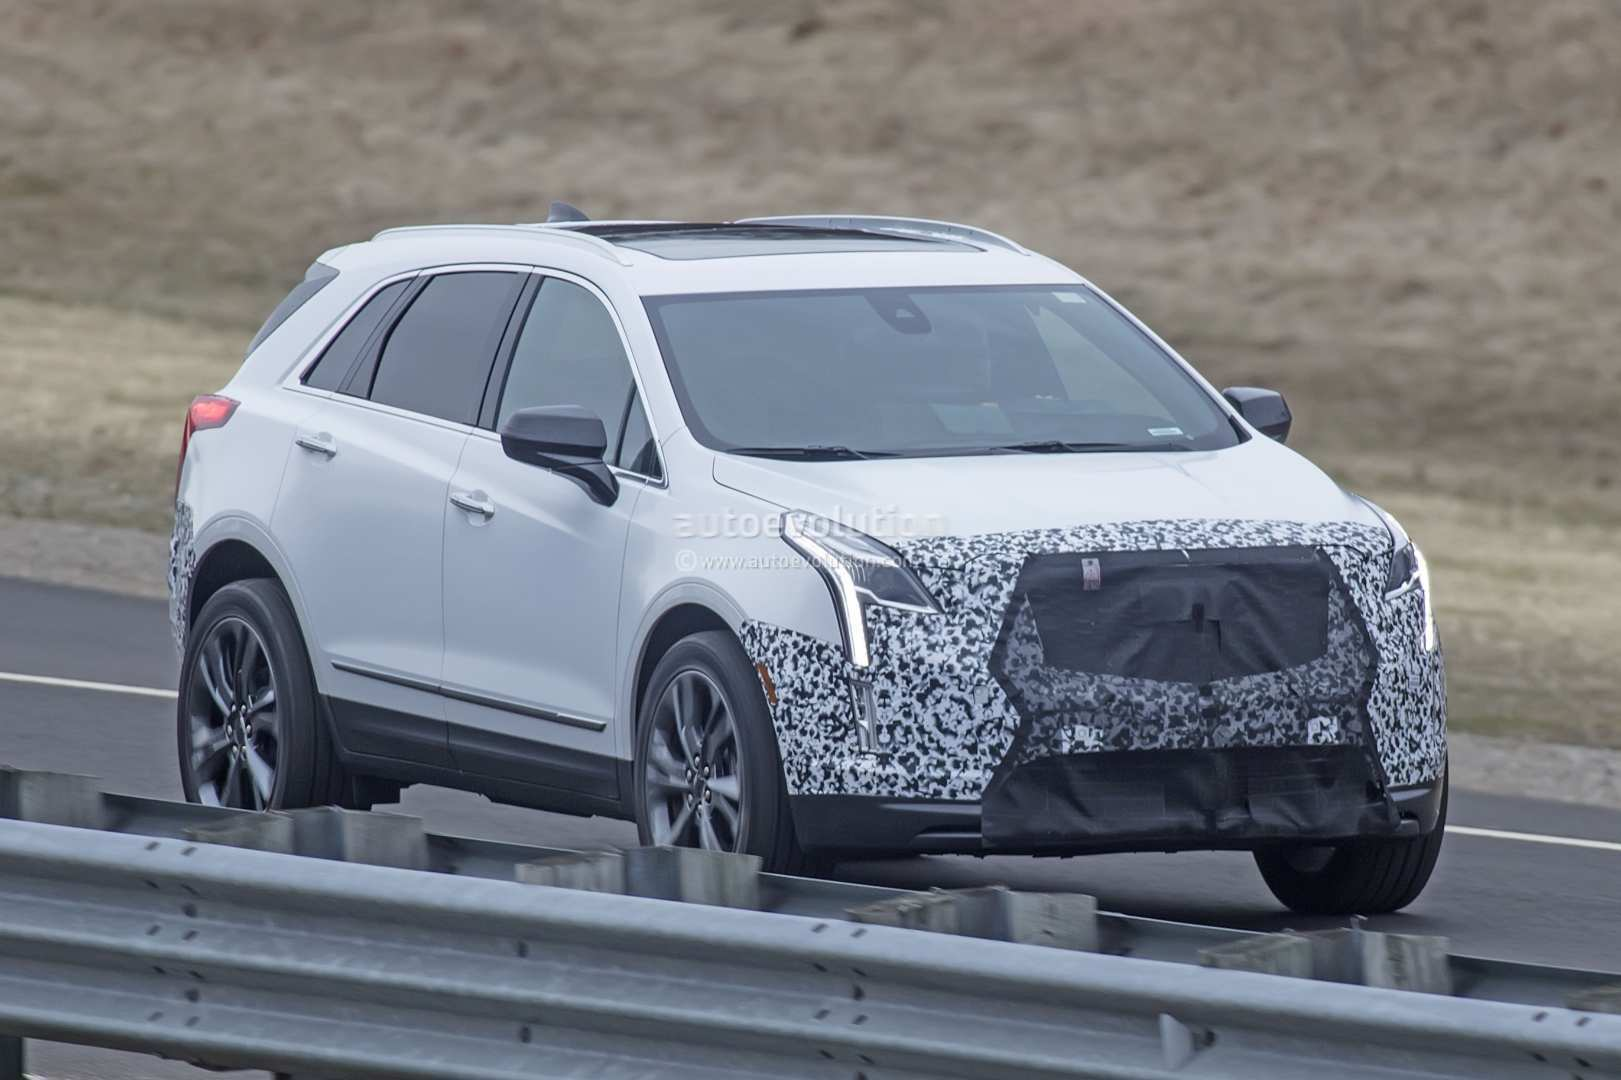 17 New Spy Shots 2020 Cadillac Xt5 Interior with Spy Shots 2020 Cadillac Xt5